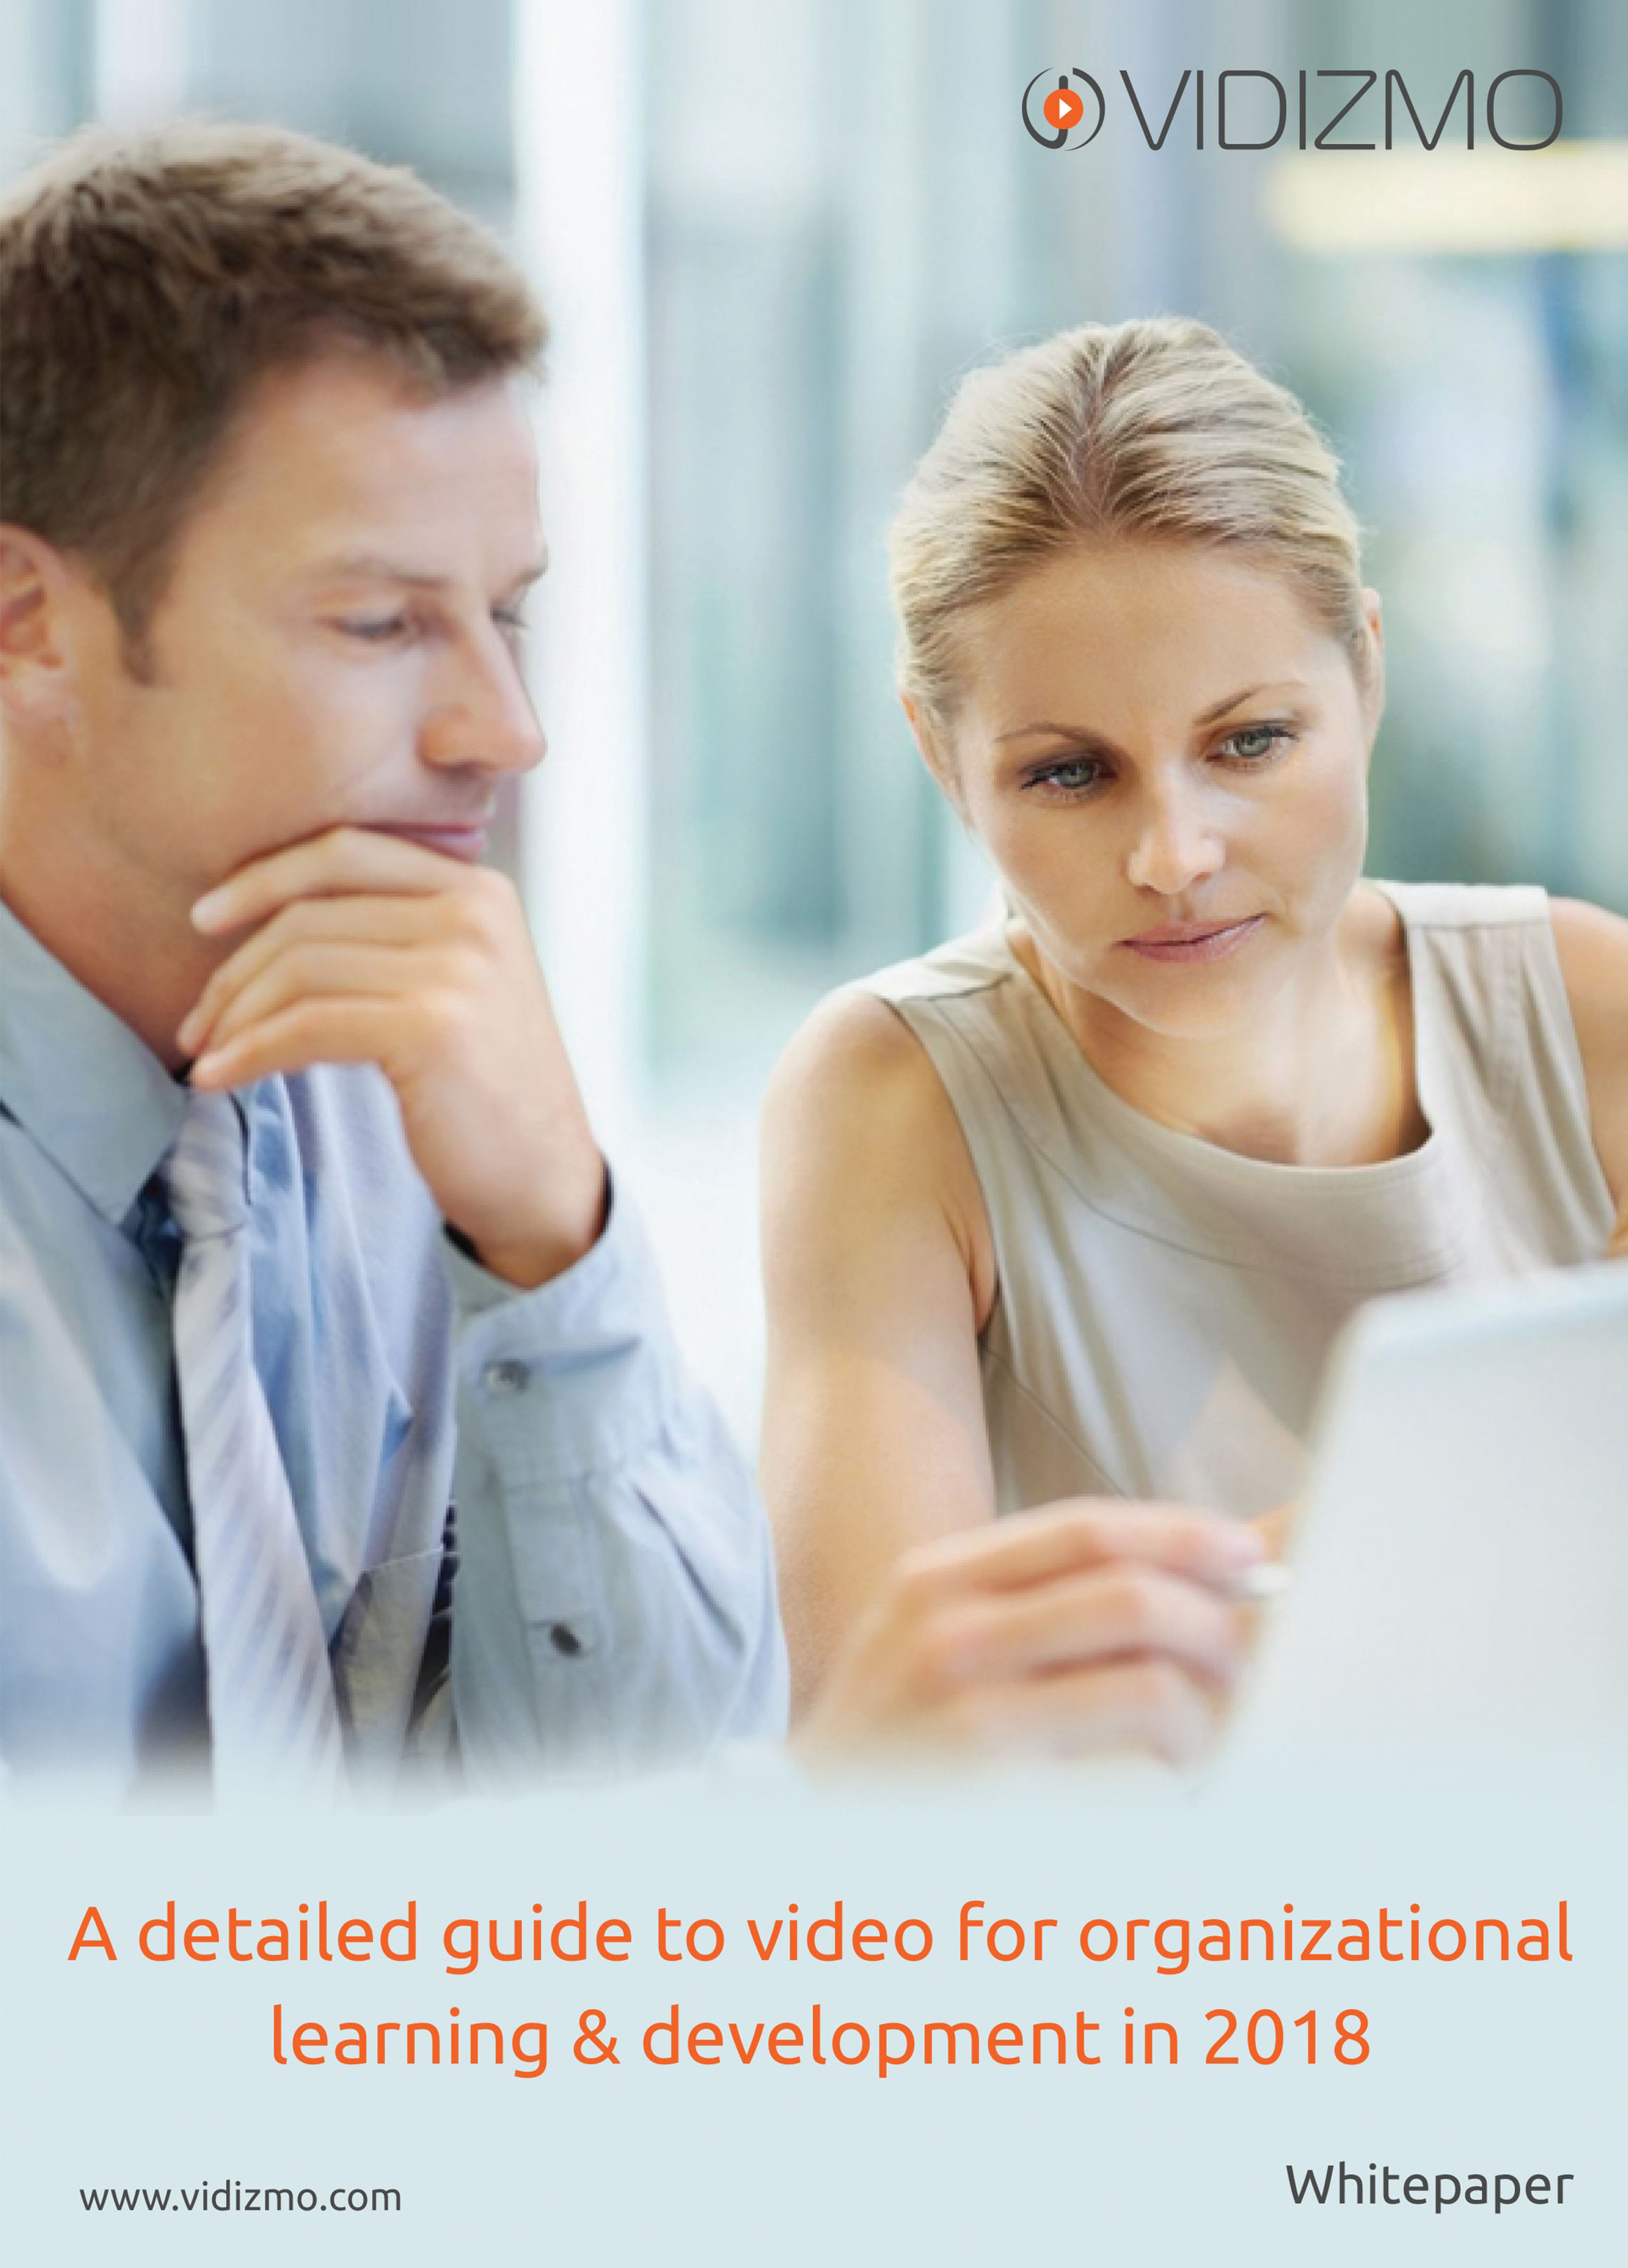 A detailed guide to video for organizational learning & development in 2018